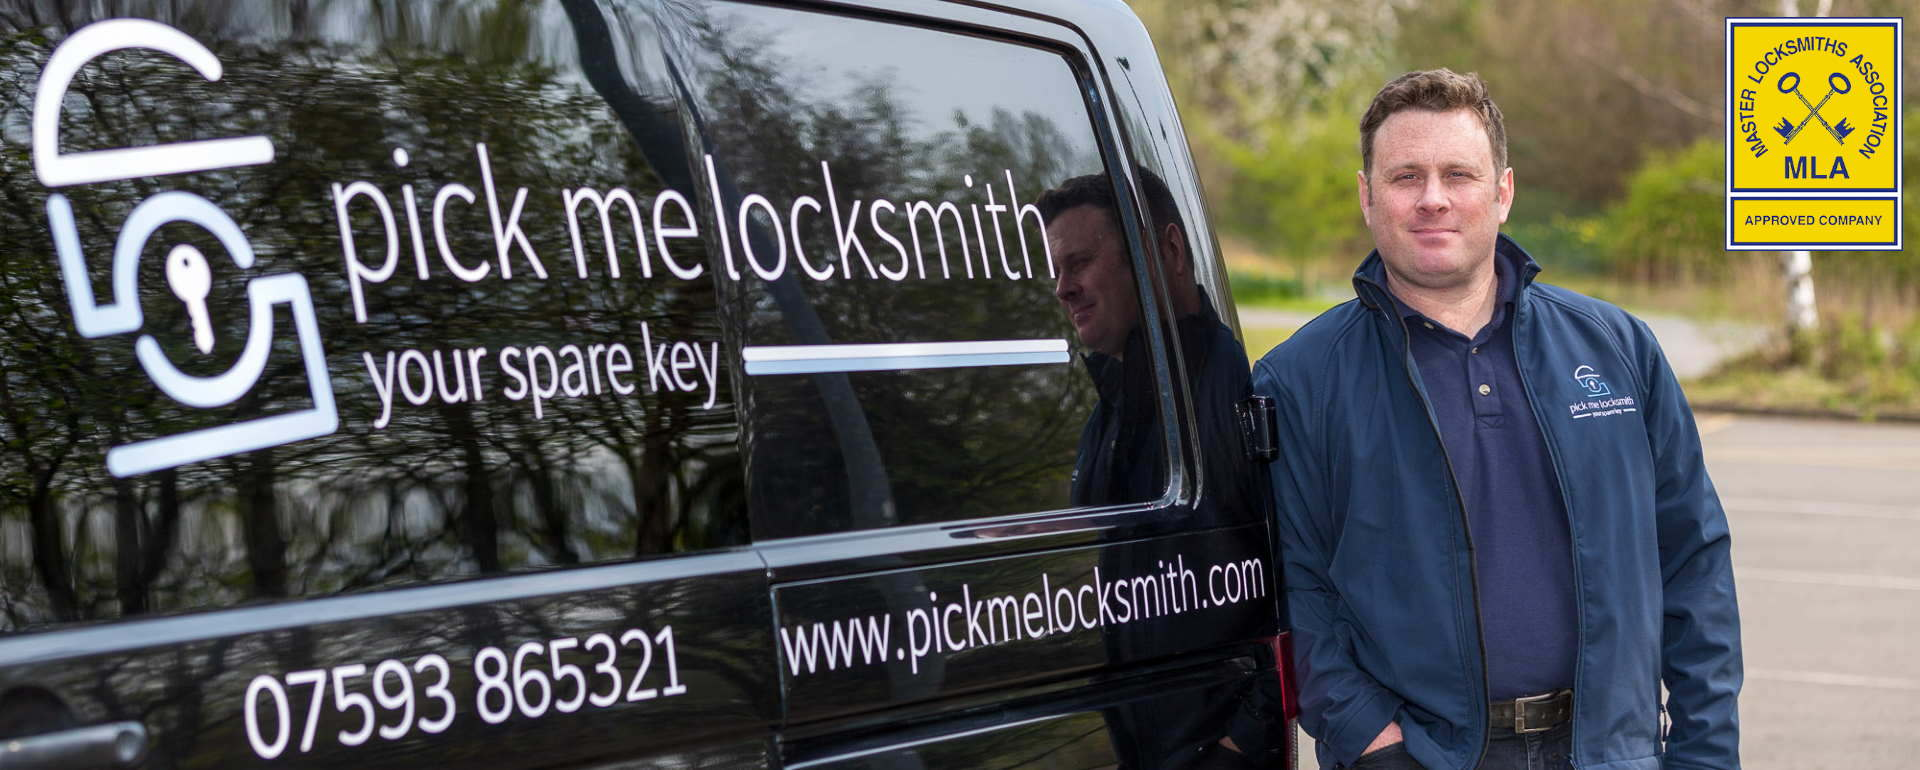 Mark Santi Master Locksmith Swadlincote by his Locksmith Near Me Van 1